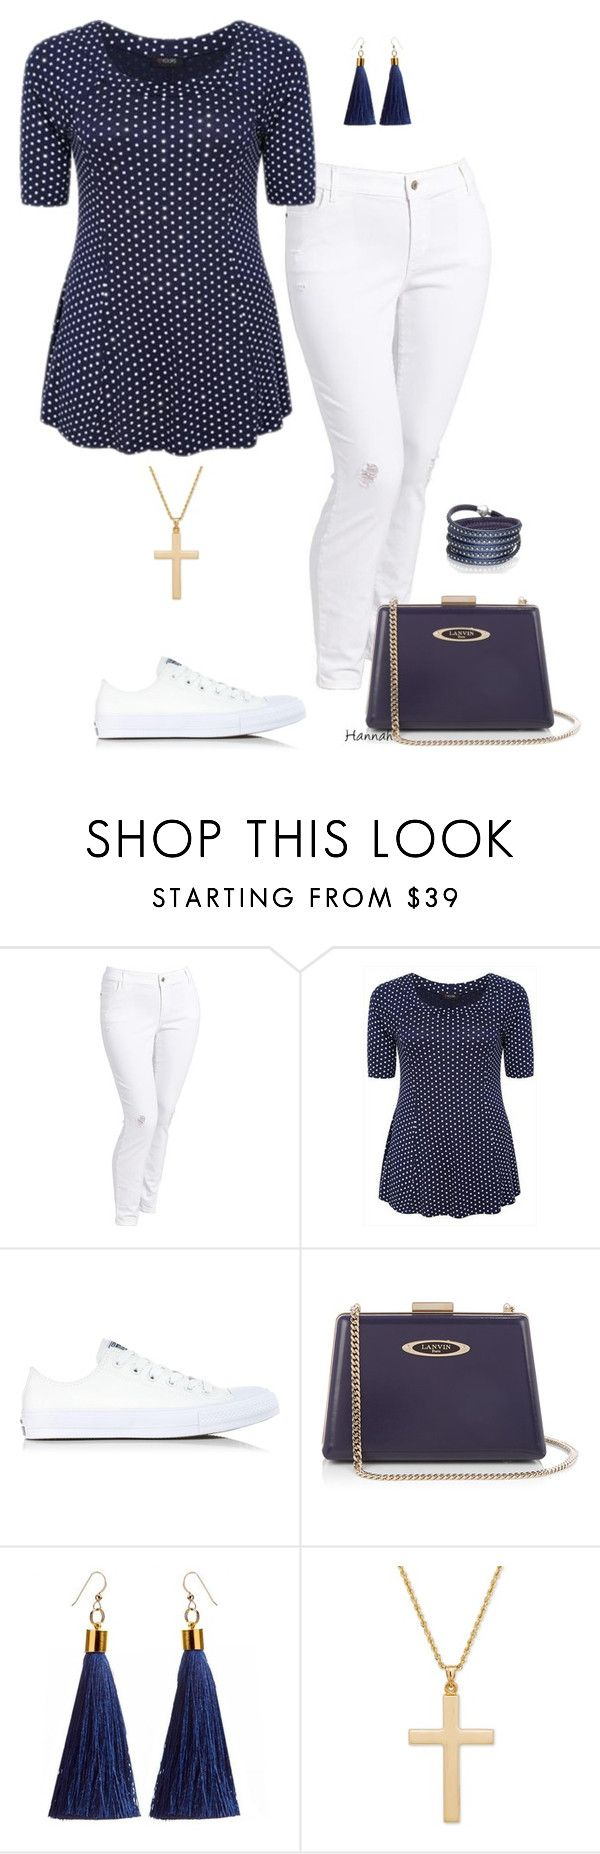 """Hannah's set- plus size"" by gchamama ❤ liked on Polyvore featuring Old Navy, Converse, Lanvin and Sif Jakobs Jewellery"